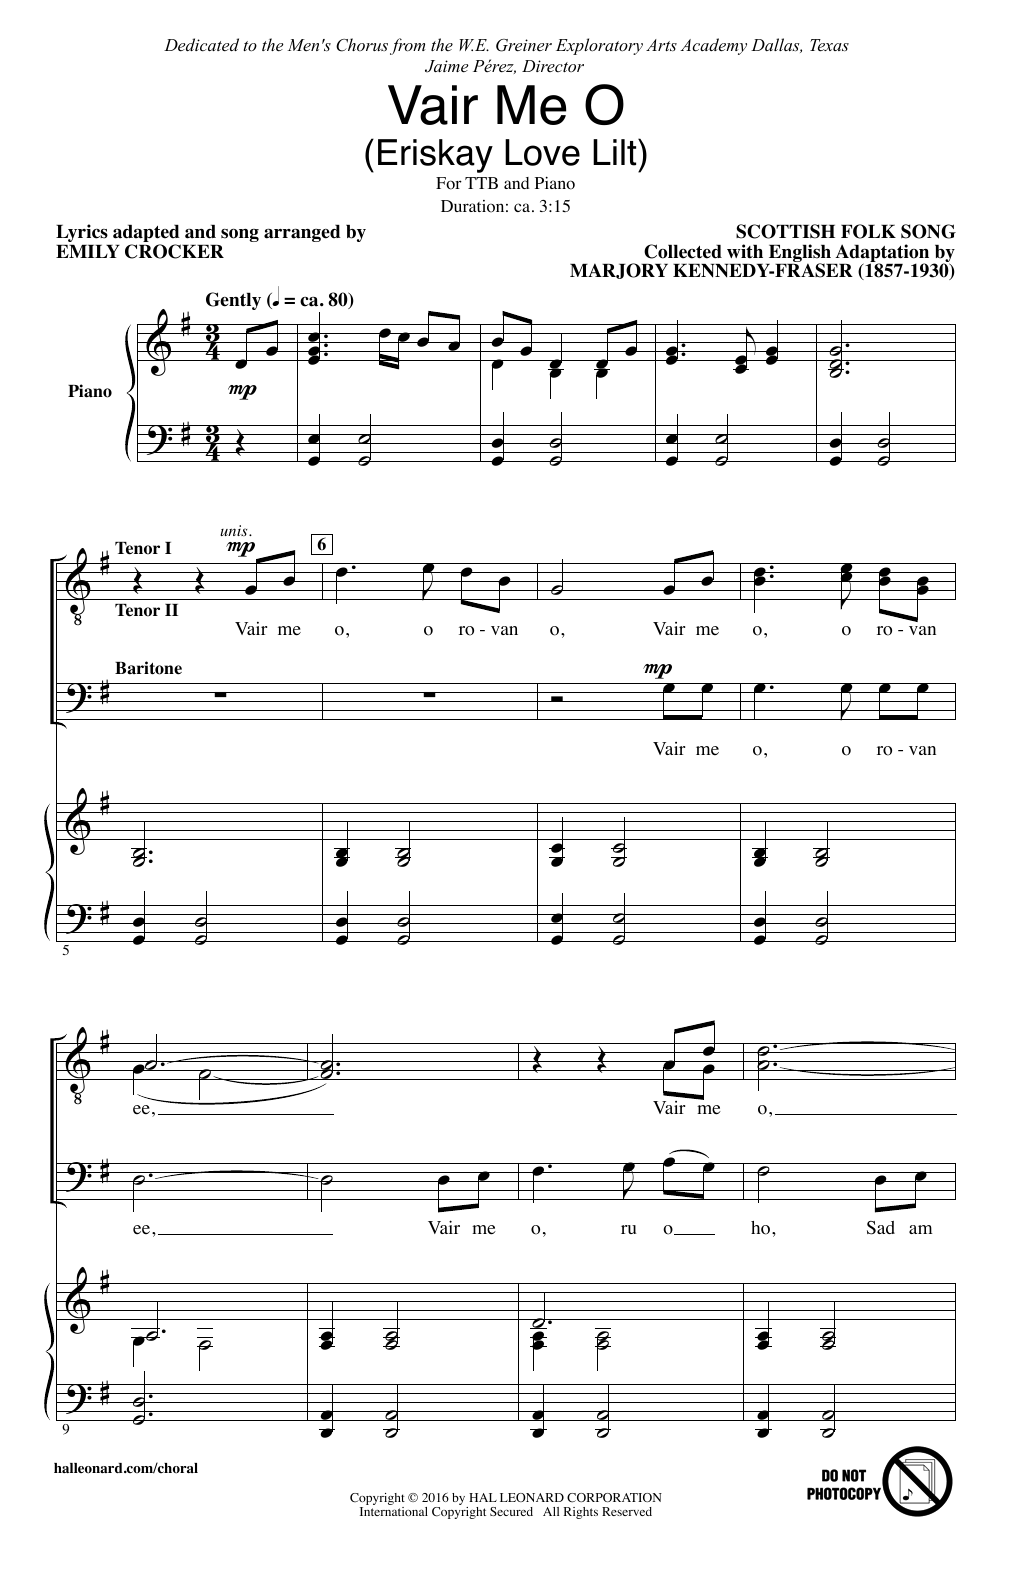 Vair Me O (Eriskay Love Lilt) (arr. Emily Crocker) Sheet Music